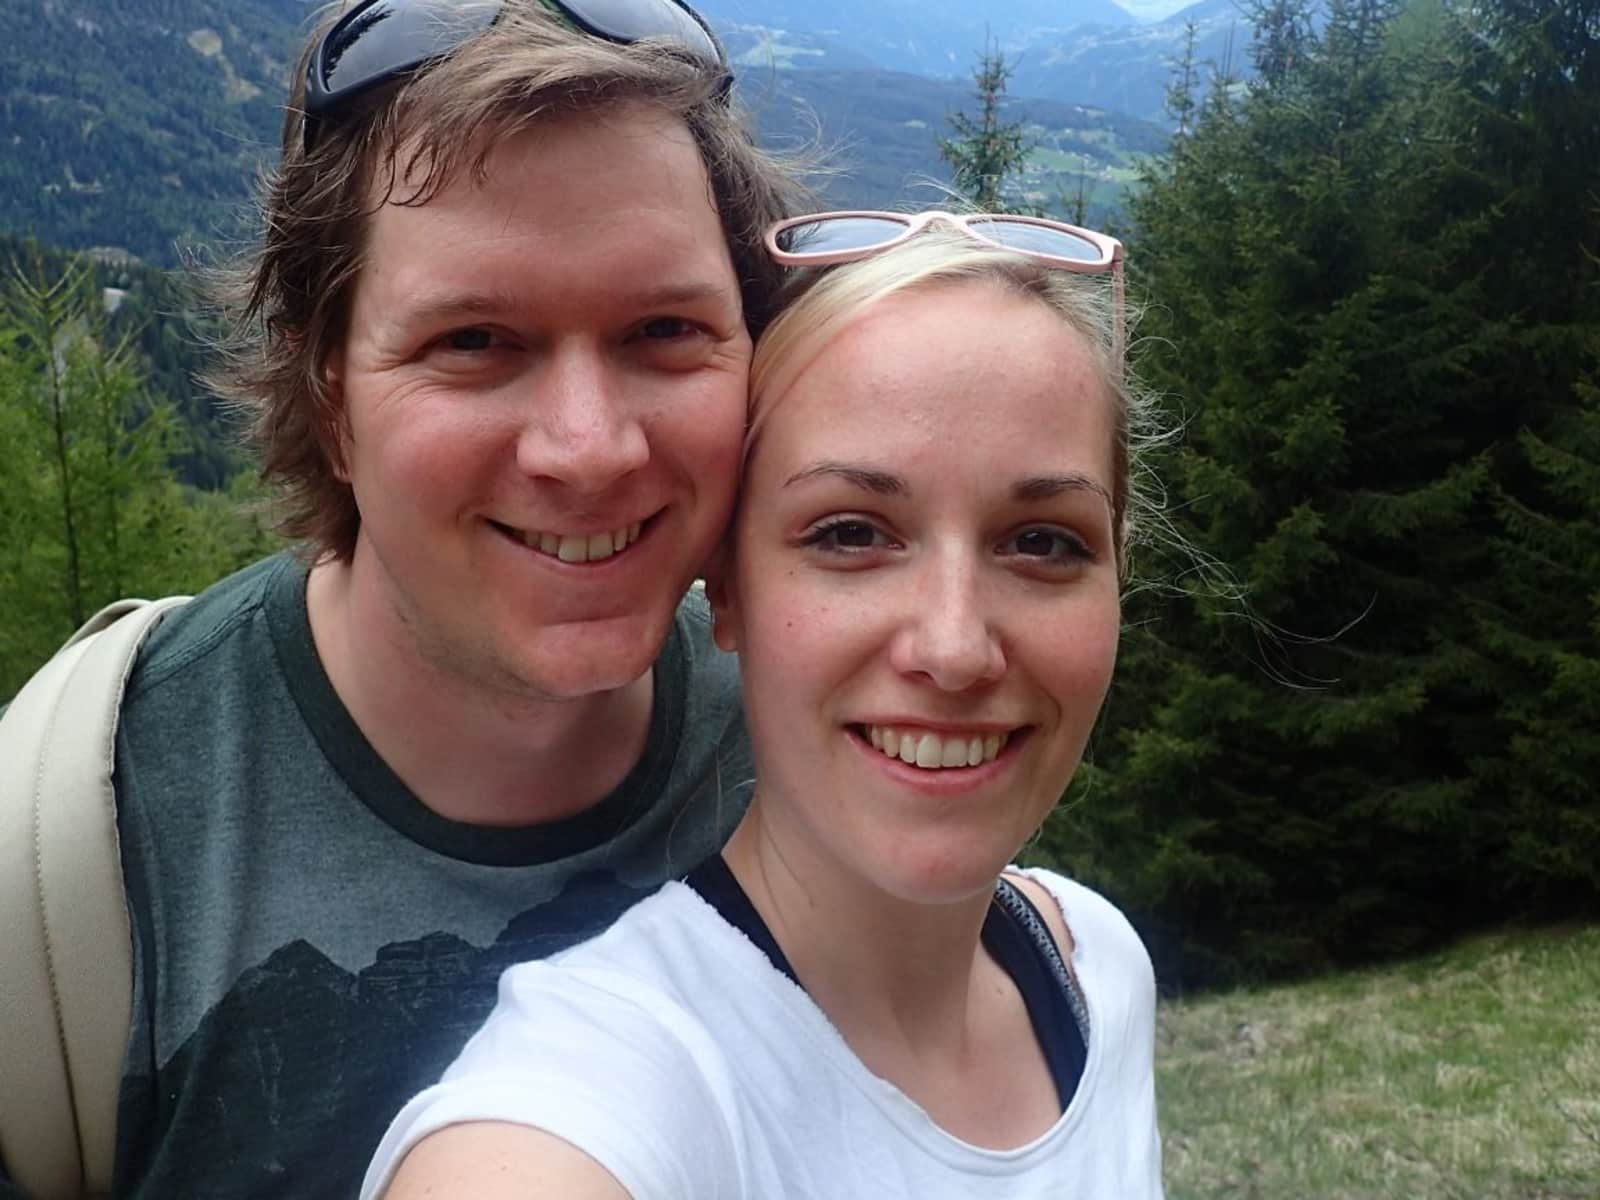 Timothy & Justine from Wanaka, New Zealand